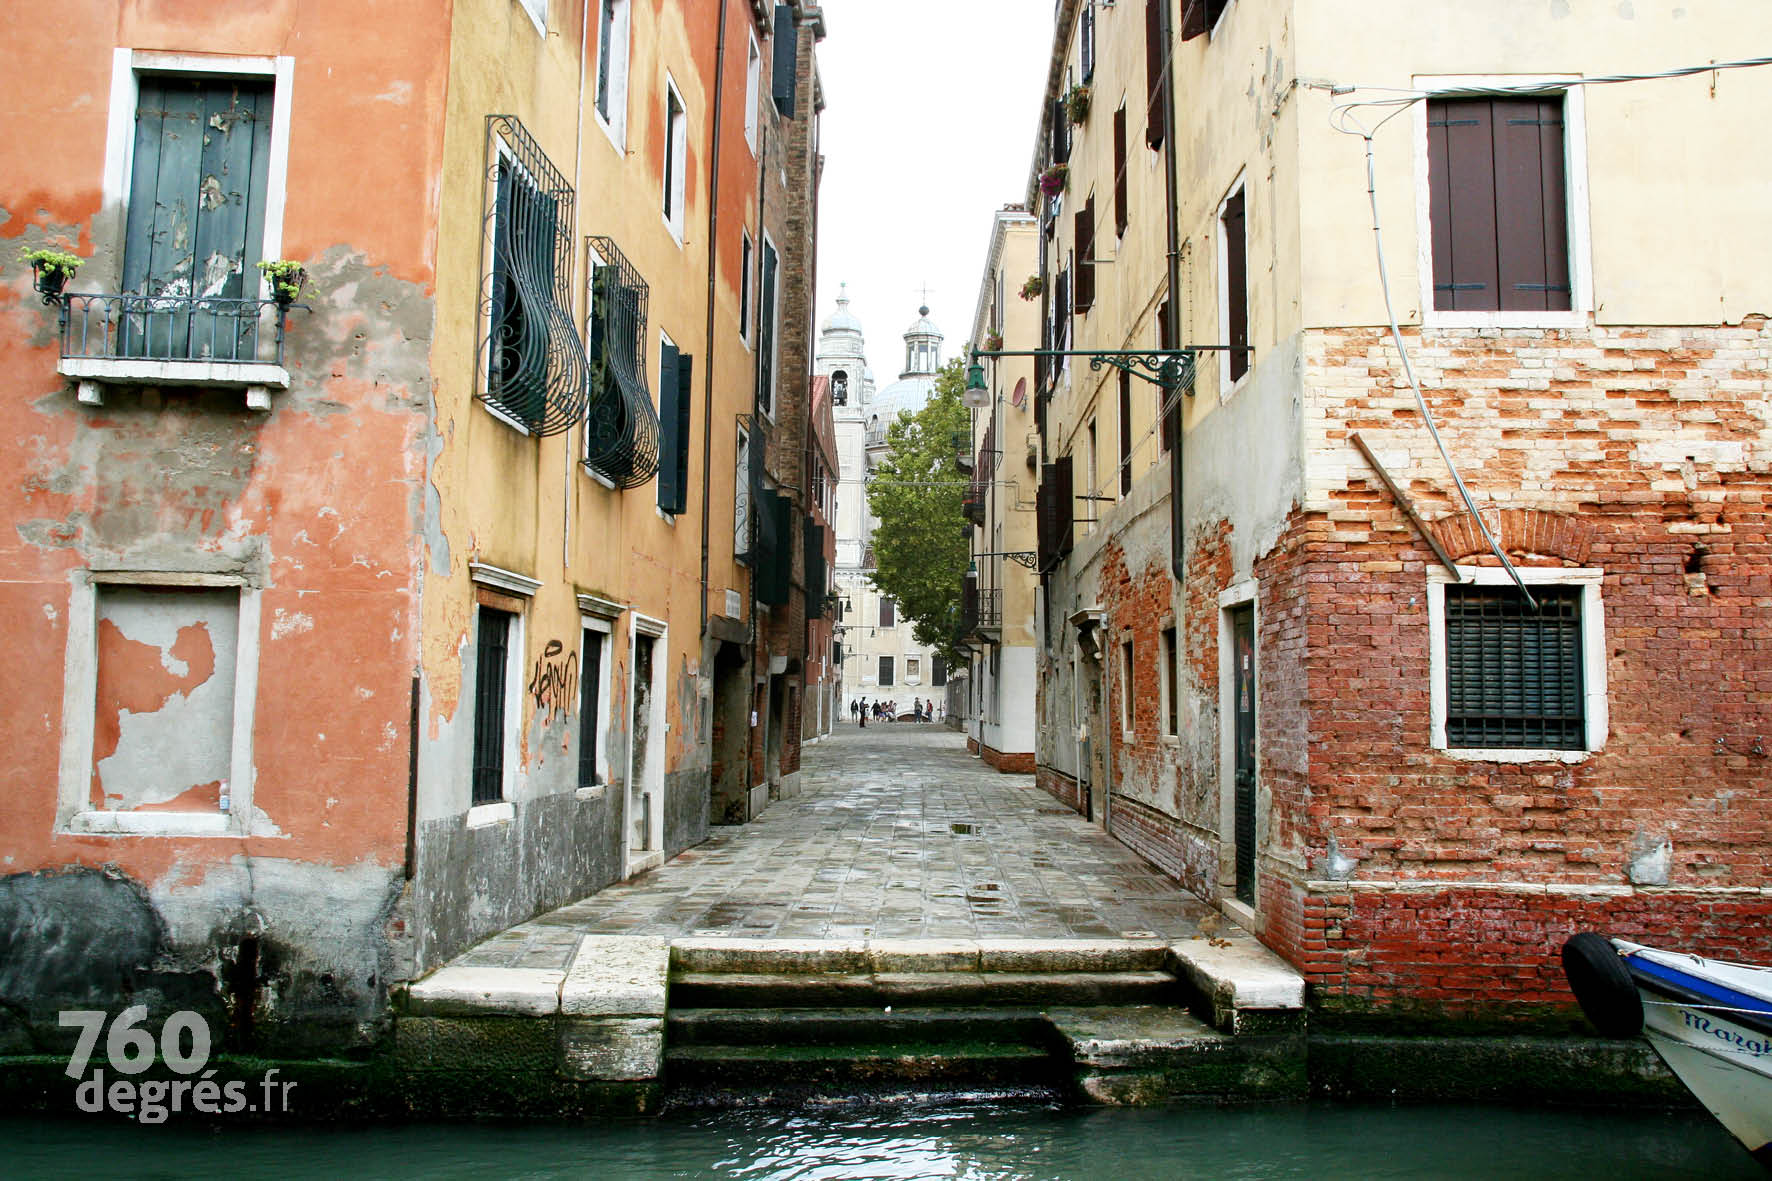 photos-760degres-venise-21